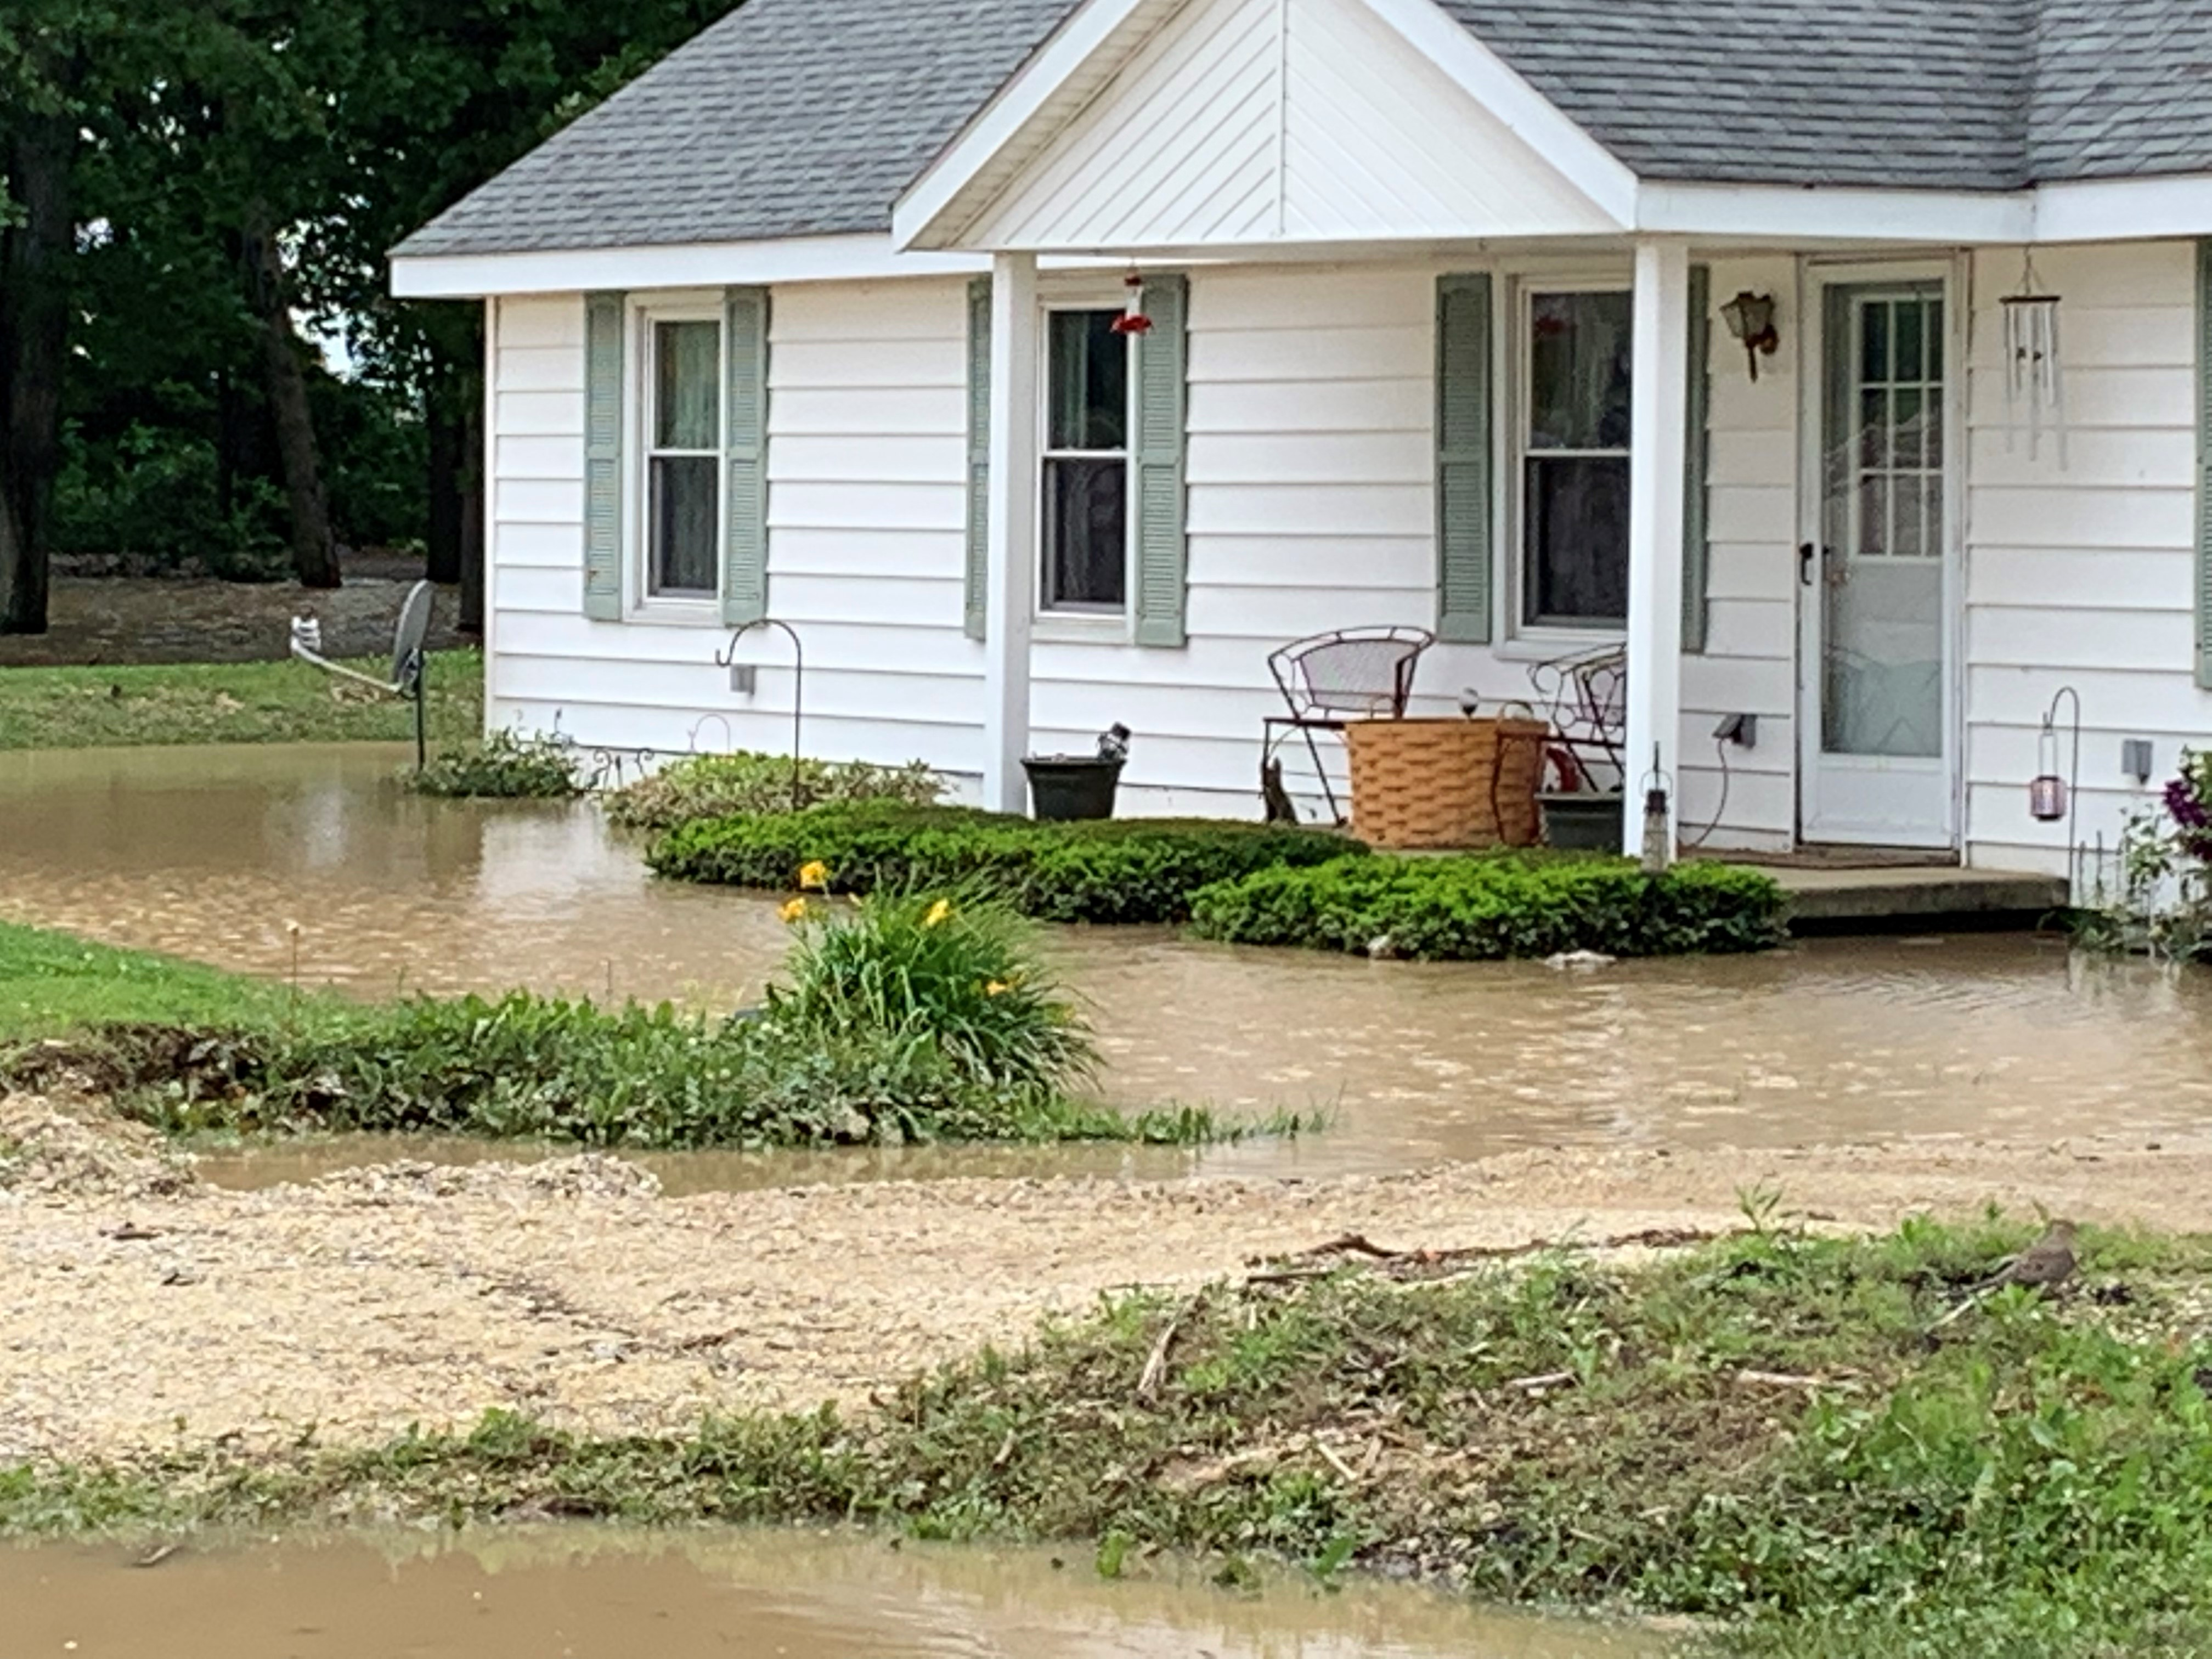 6-20 St Anthony Road in Mercer County